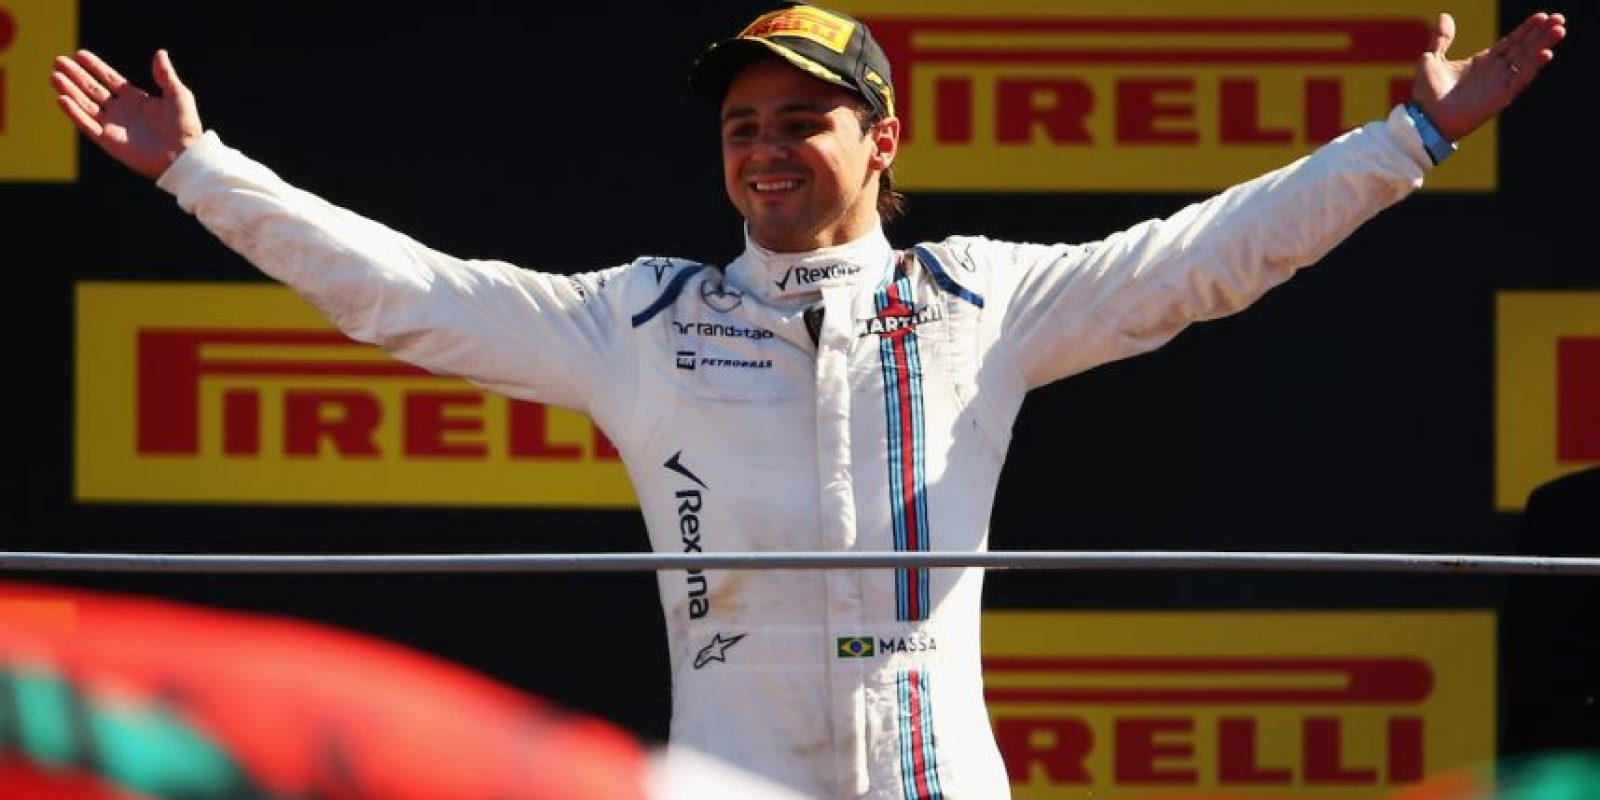 4. Felipe Massa (Williams) = 97 puntos. Foto: Getty Images